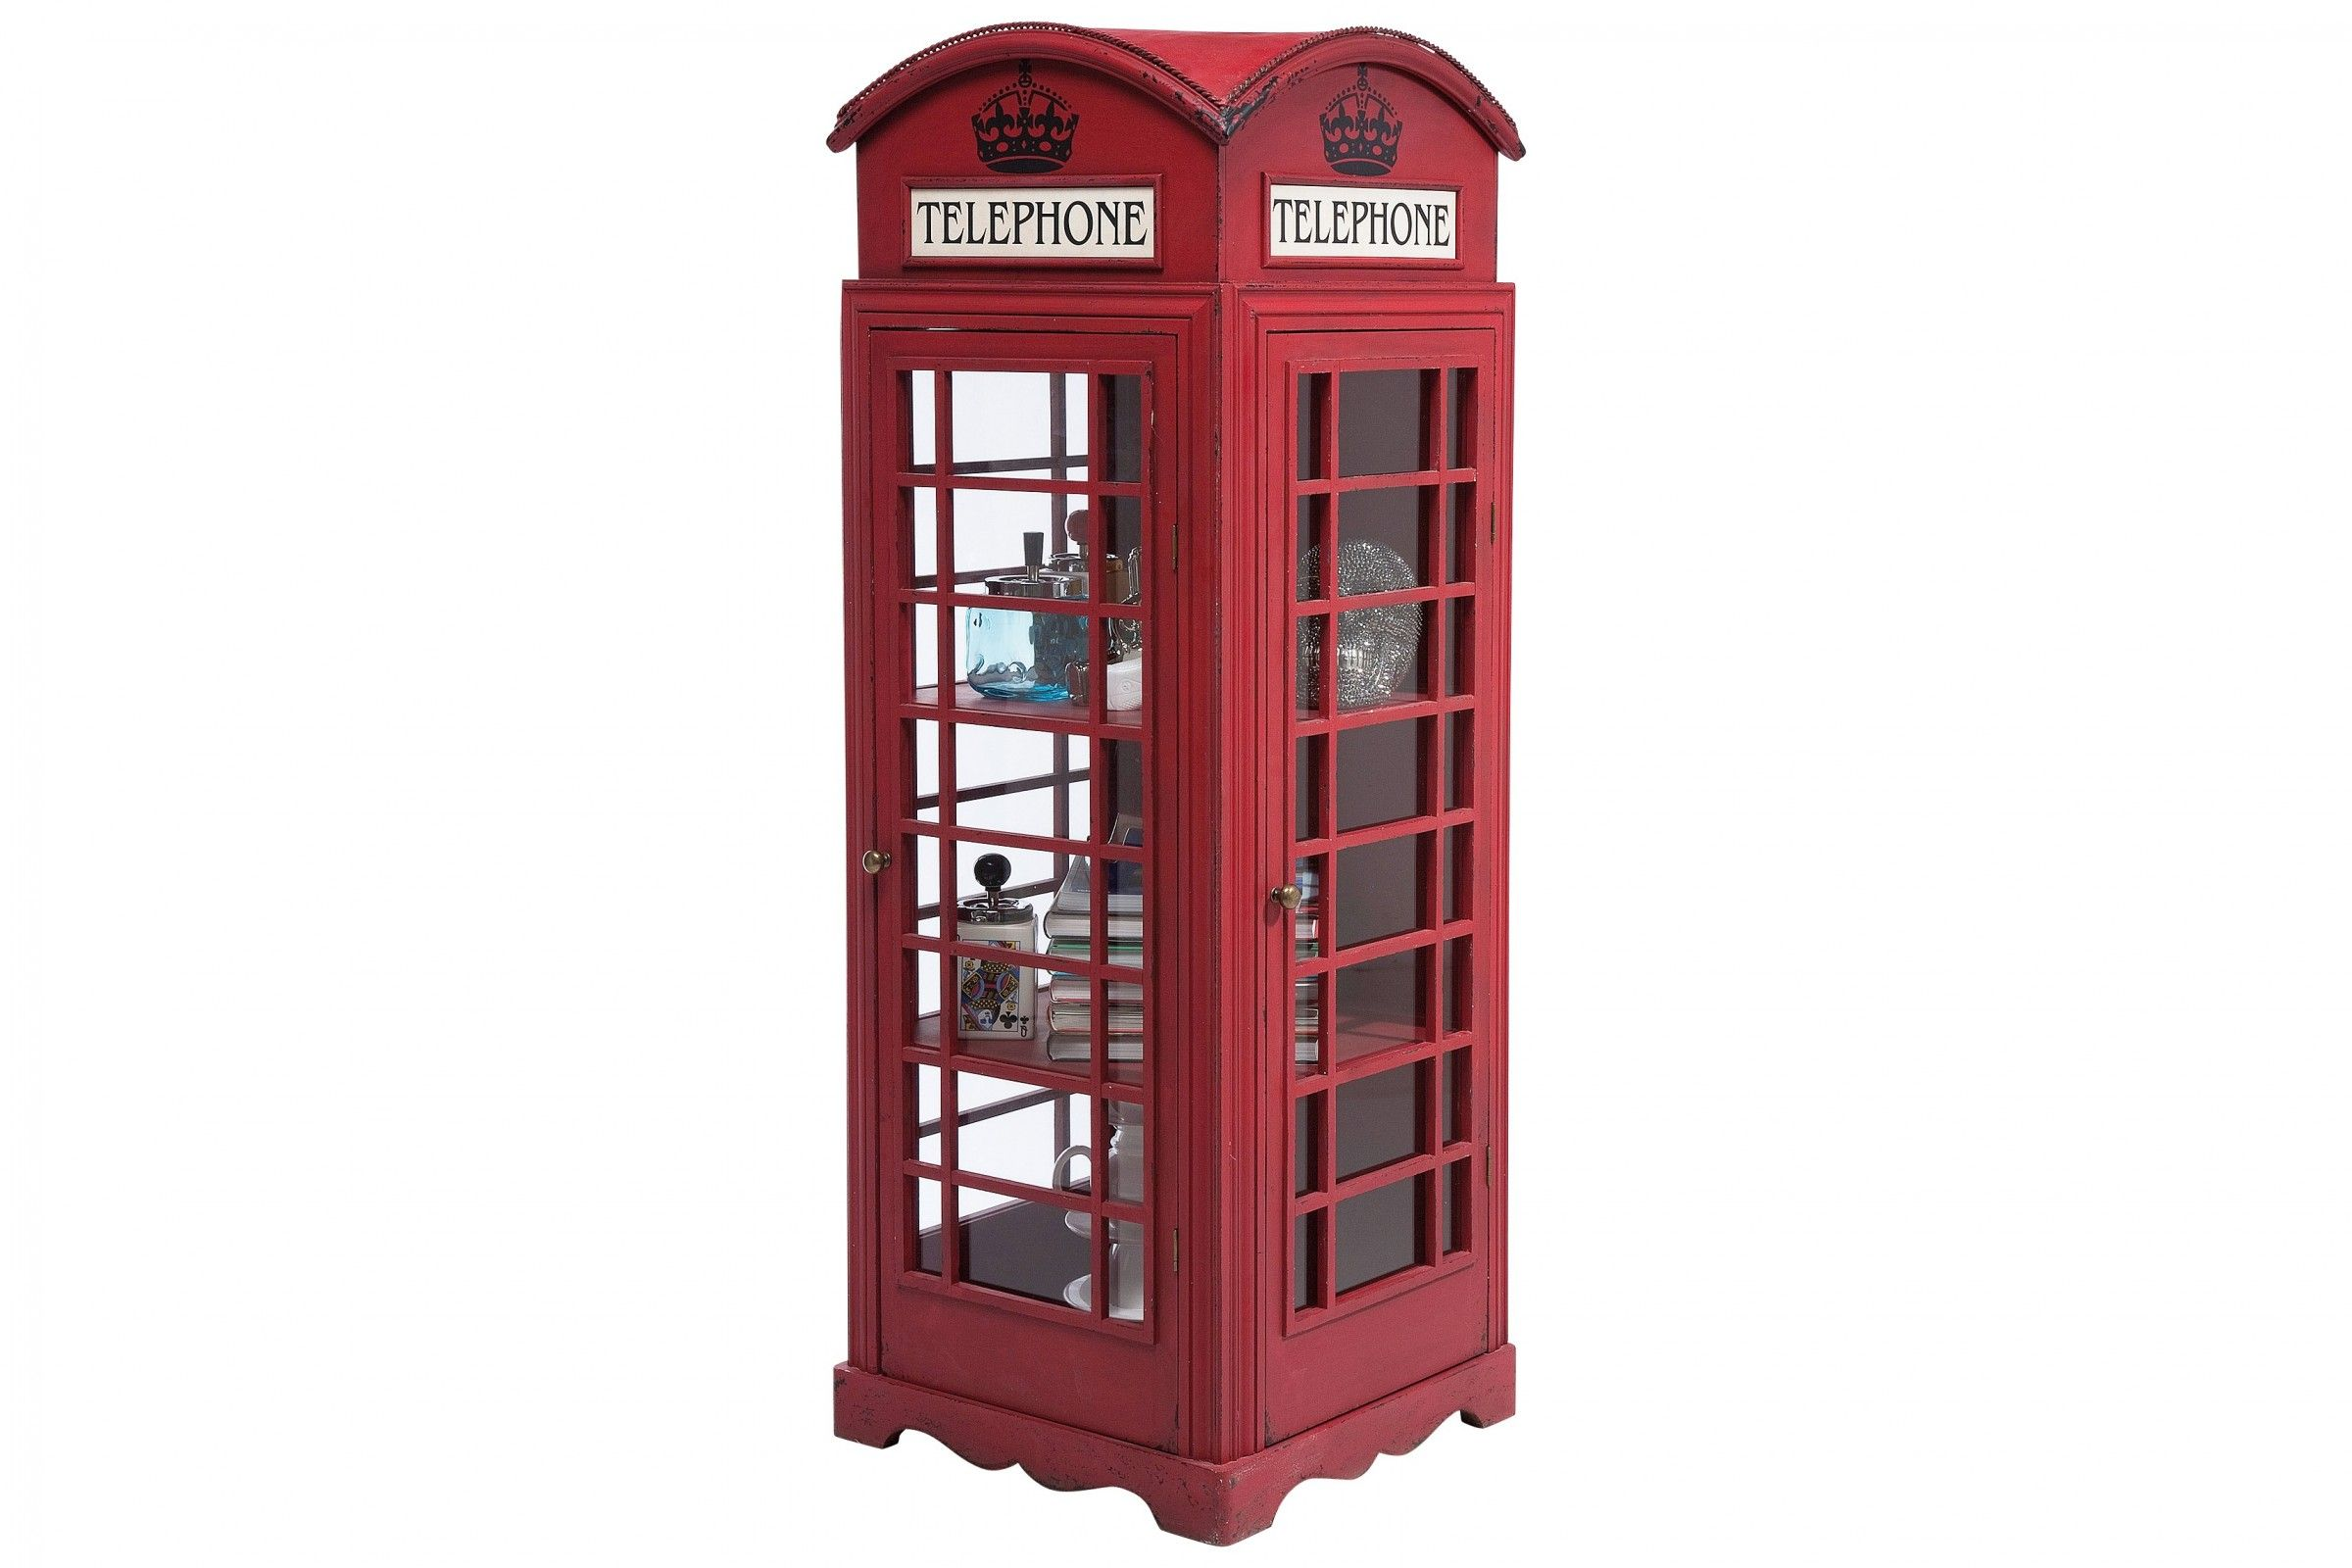 Schrank London Telephone Display Cabinet British Interior London Phone Booth